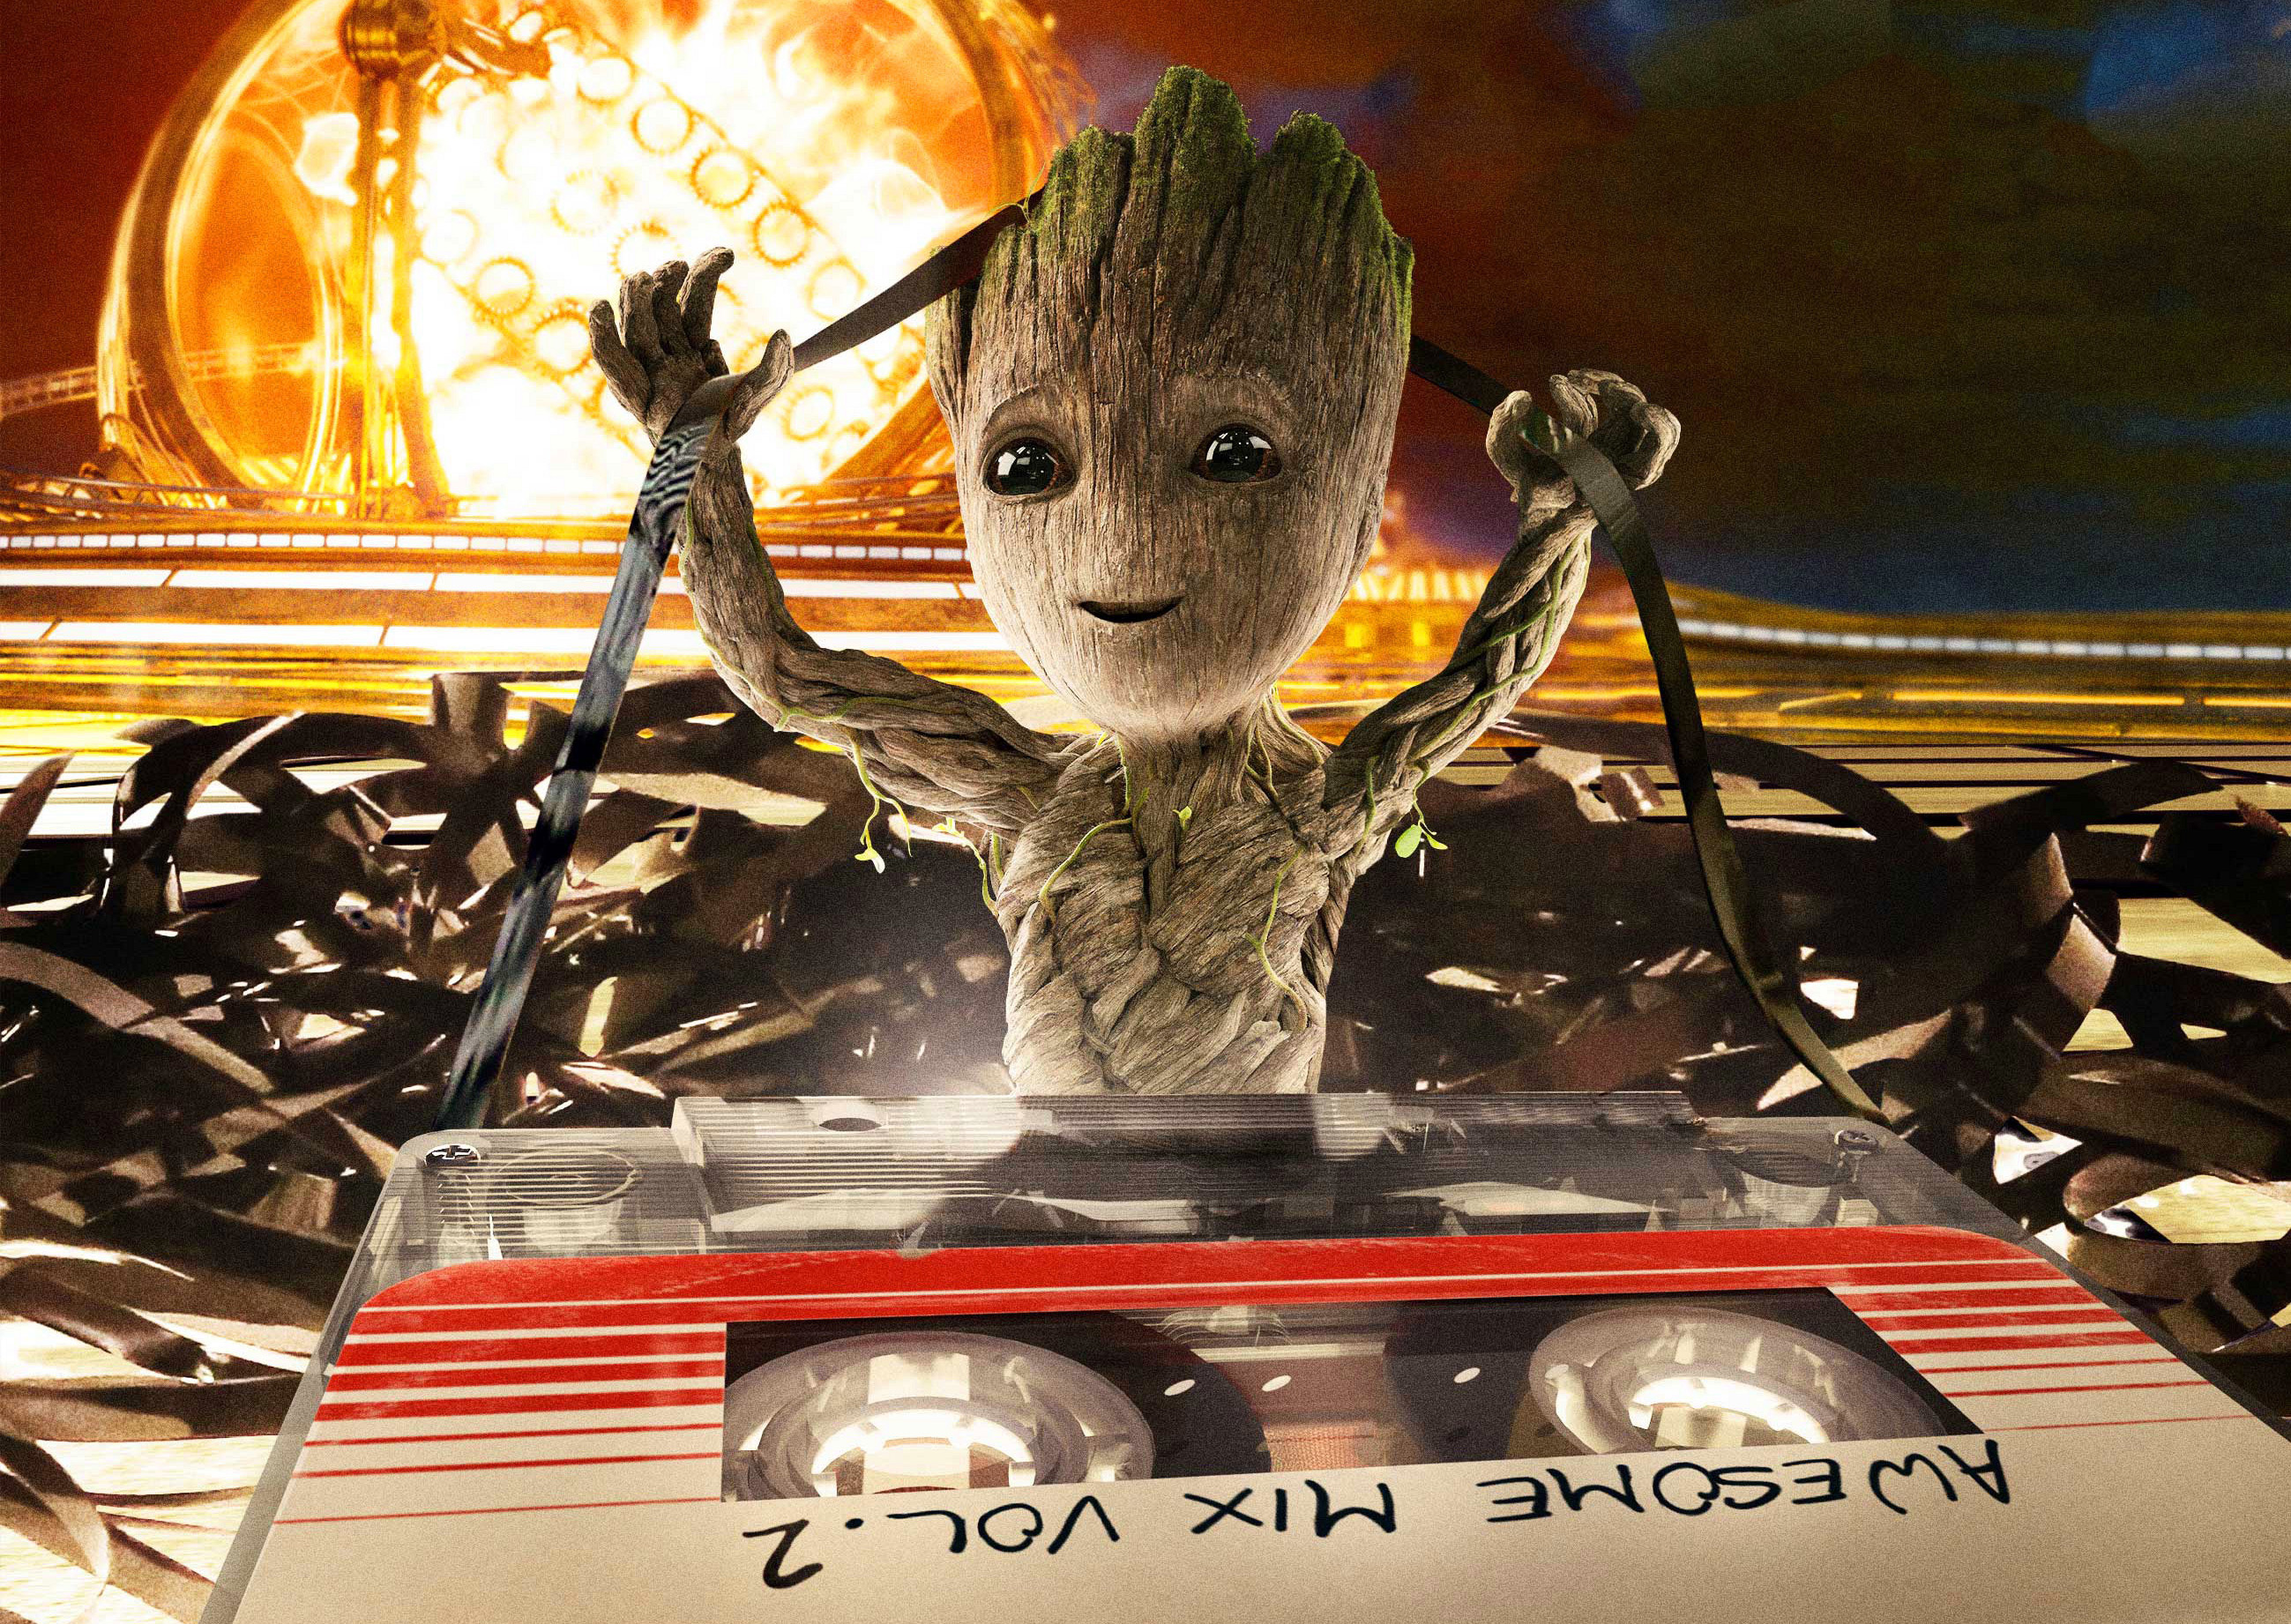 2017movies_little_groot_the_character_of_the_film_the_guardians_of_the_galaxy_2_113427.jpg